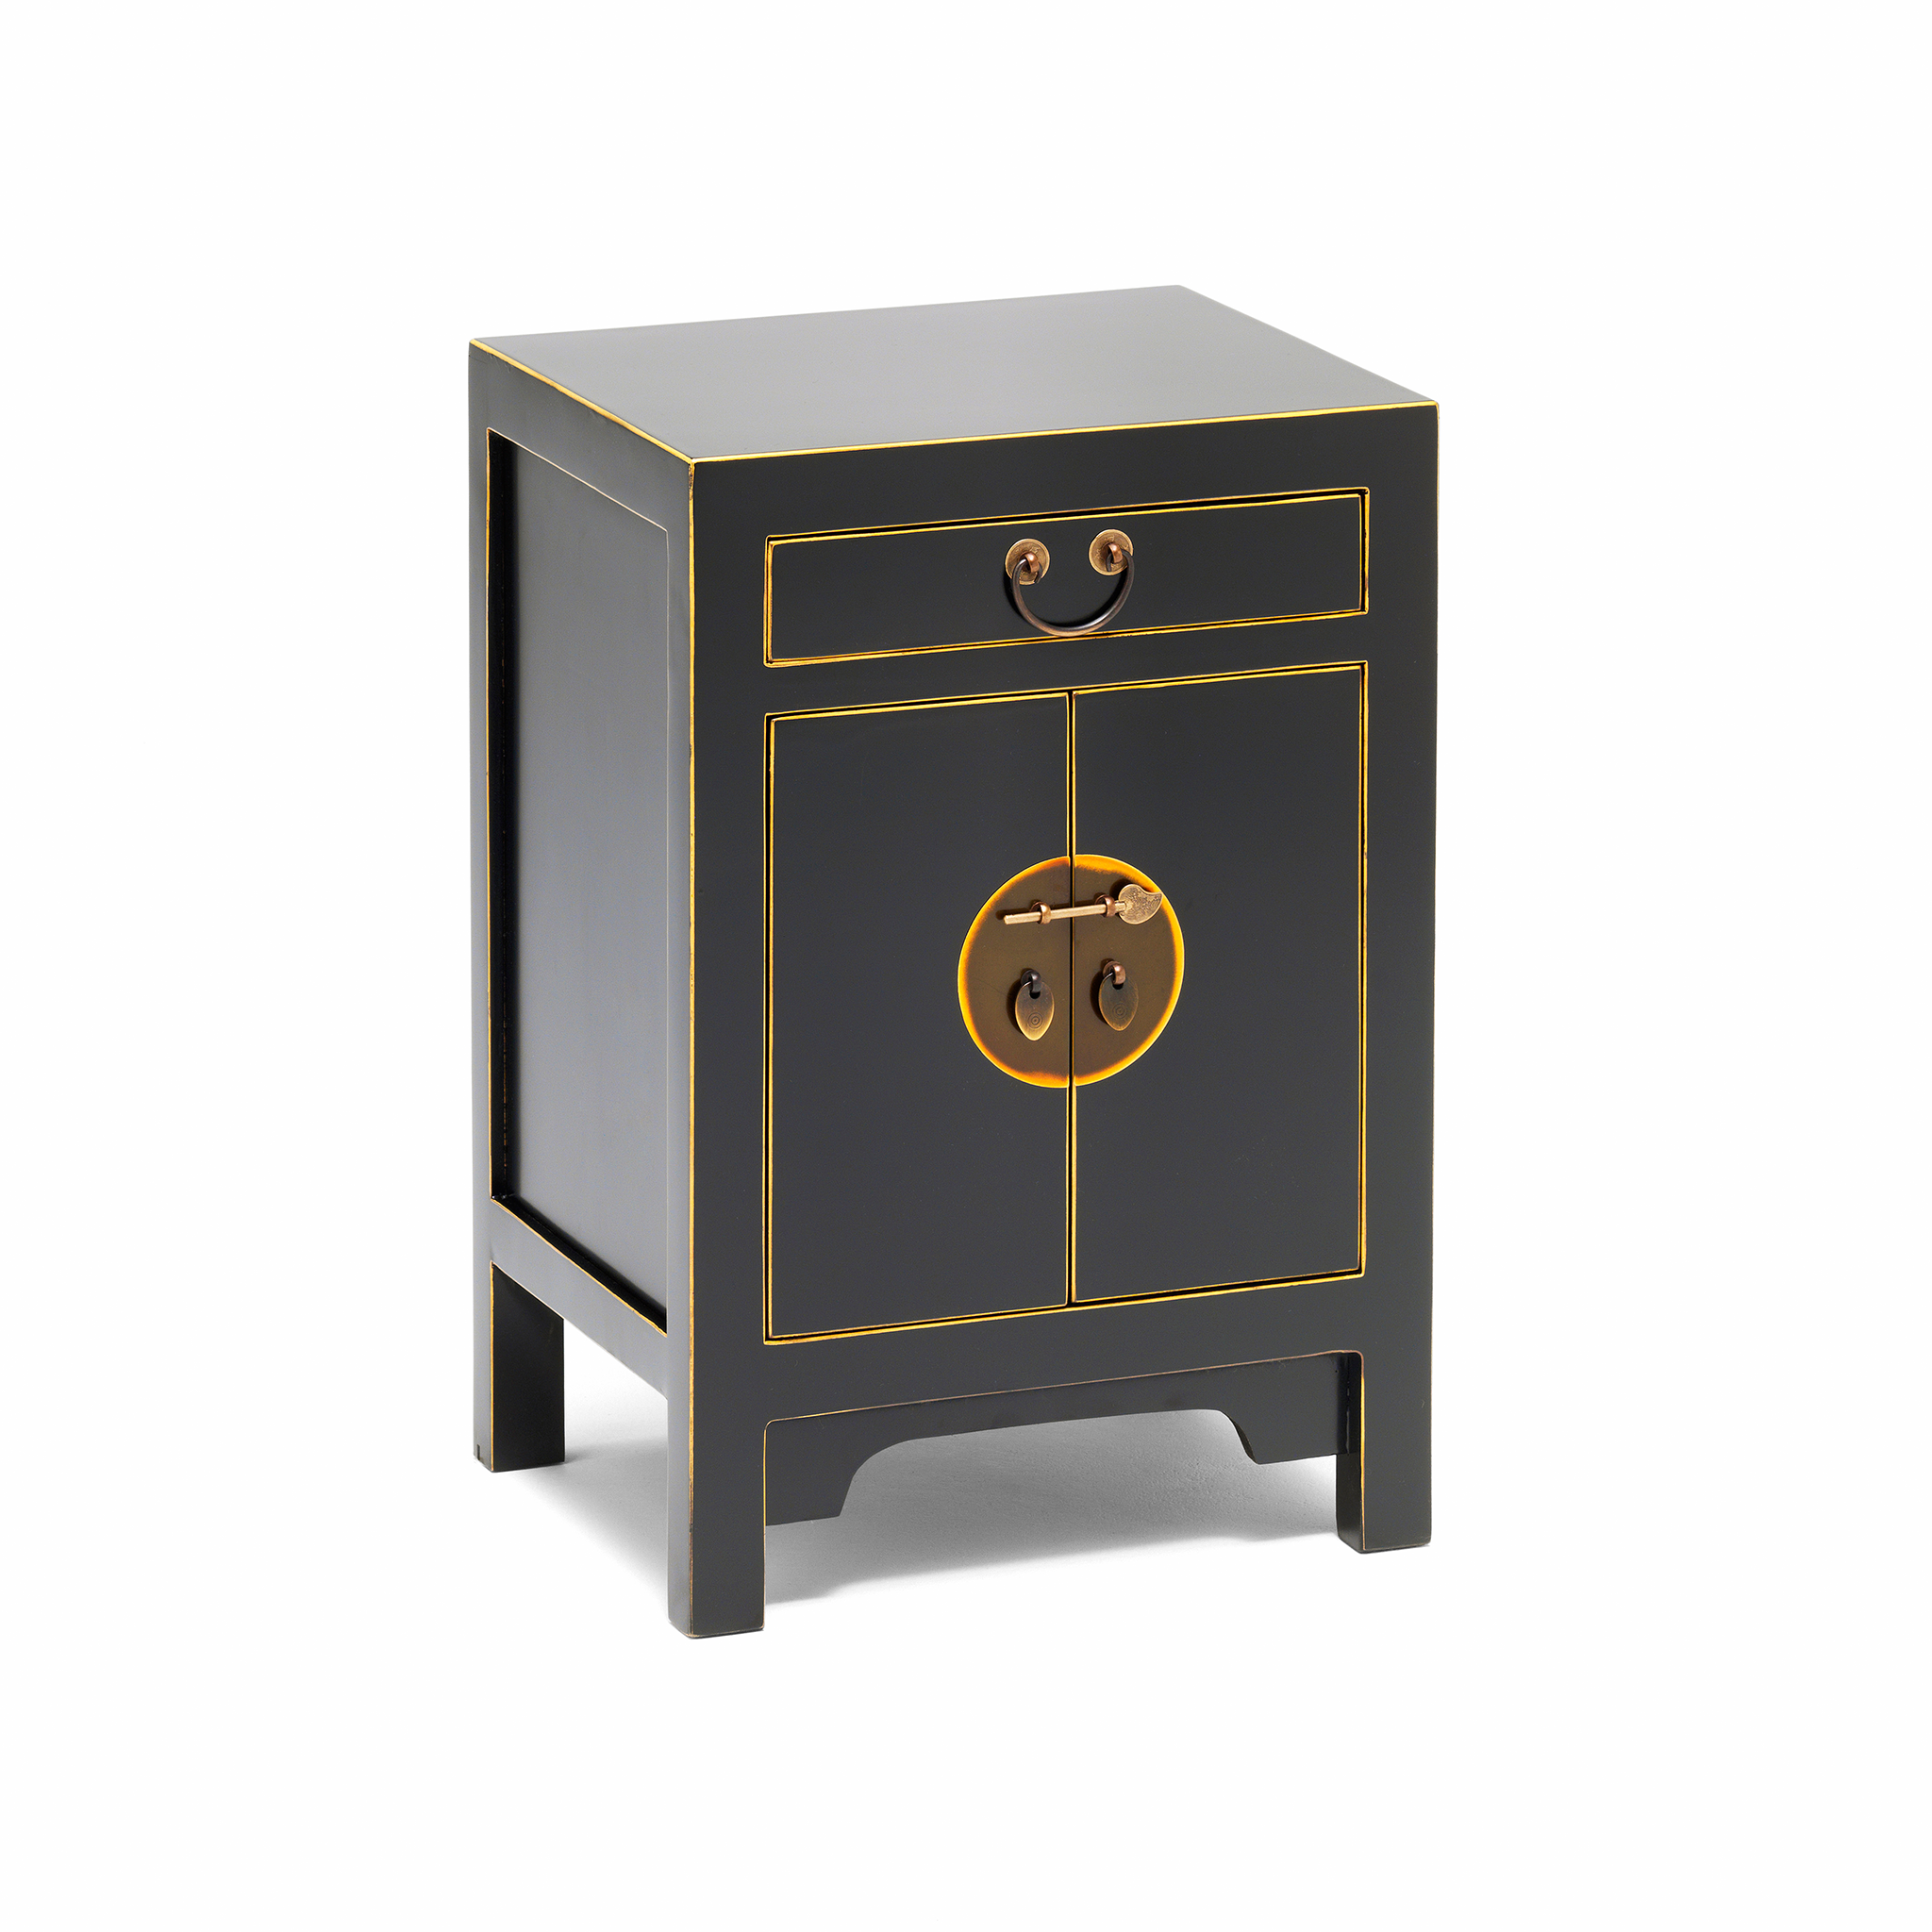 Qing black and gilt small cabinet